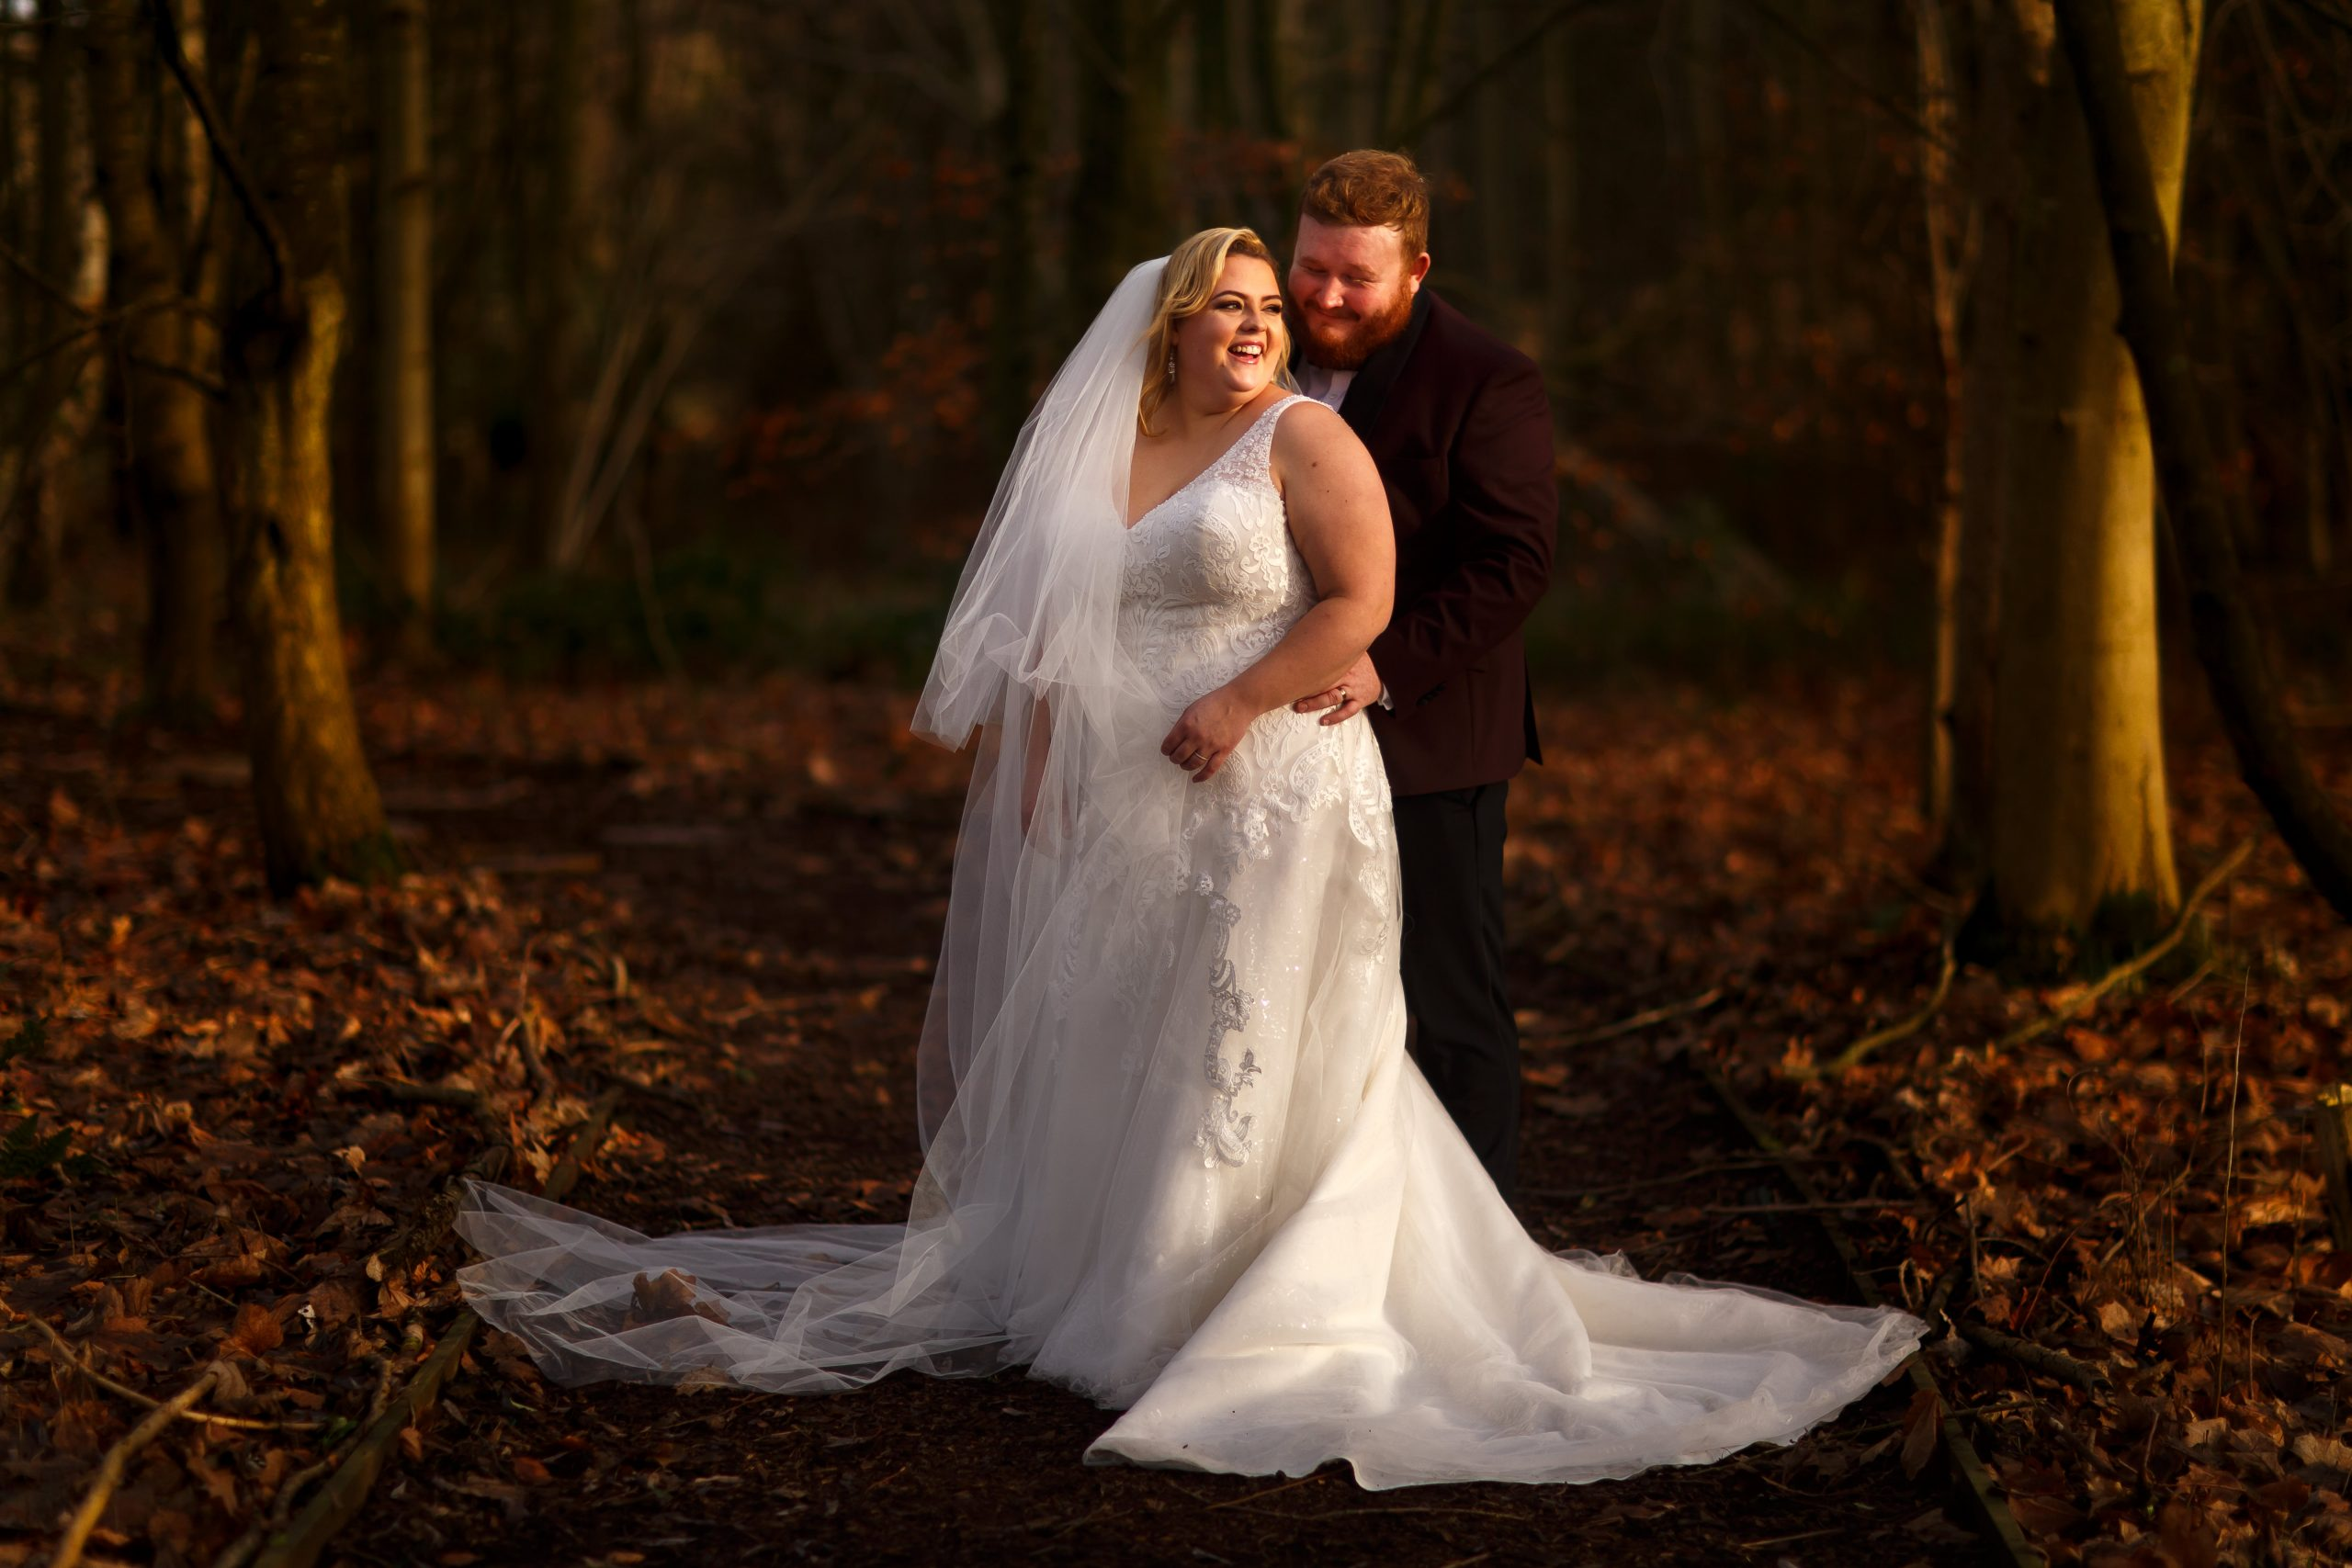 Bride with blonde hair and long veil laughing towards her ginger haired groom in the woodland at Foxfields Whalley | Foxfields Country House Wedding Photography